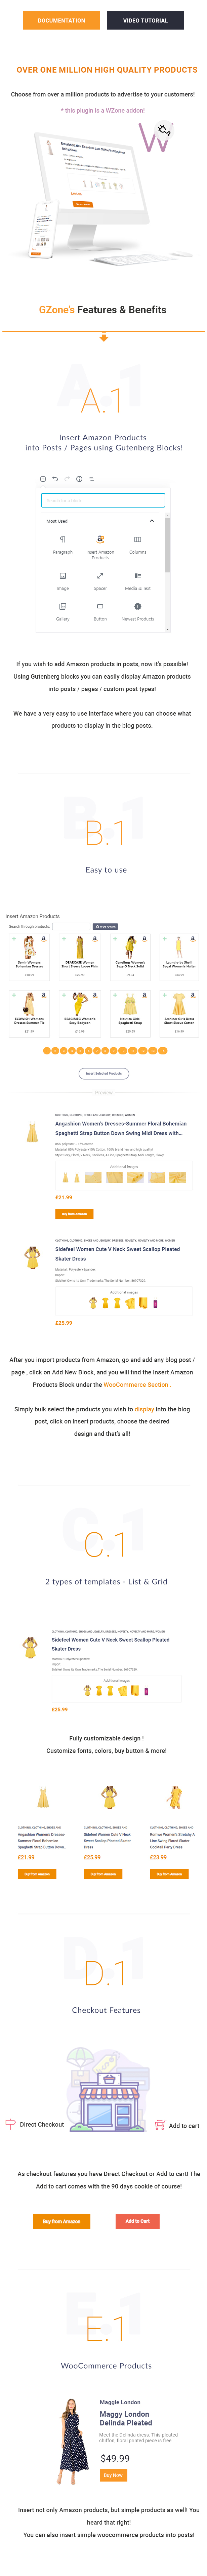 GZone - Insert Amazon / WooCommerce Products into Posts / Pages - 1